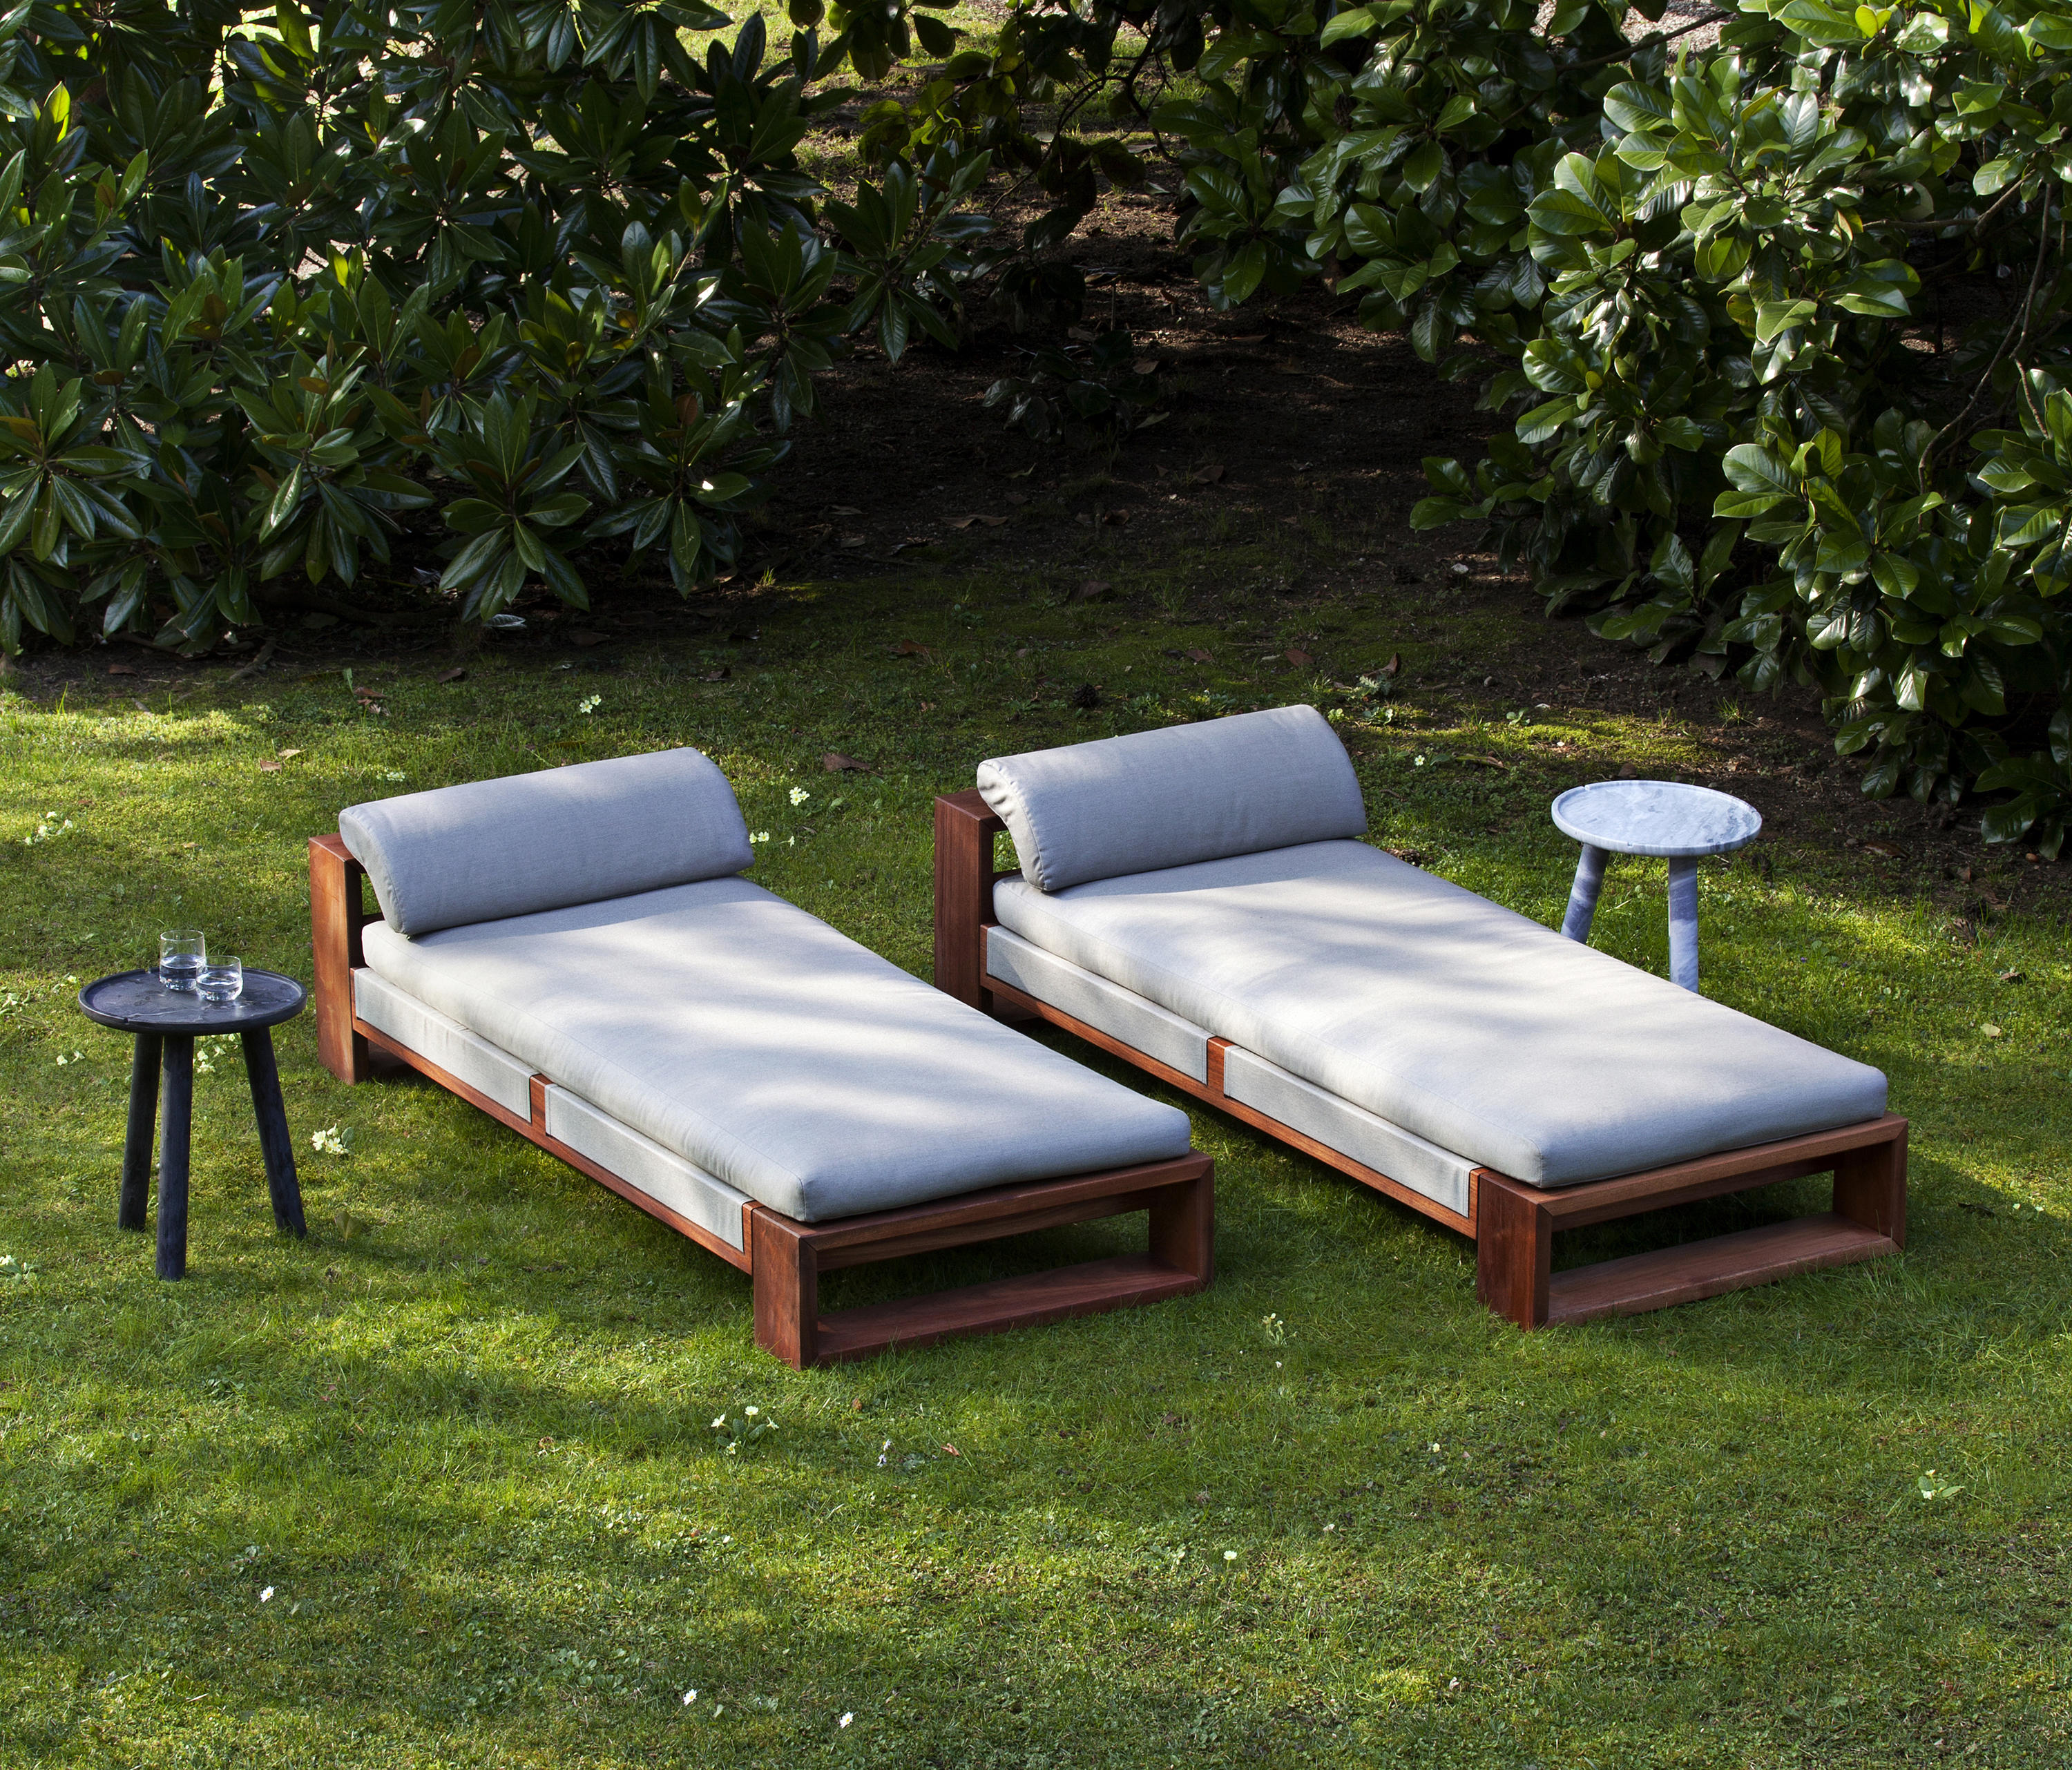 loungers lovely white outdoor in lounge chaise the sling chairs catalouge padded sun pool chair patio